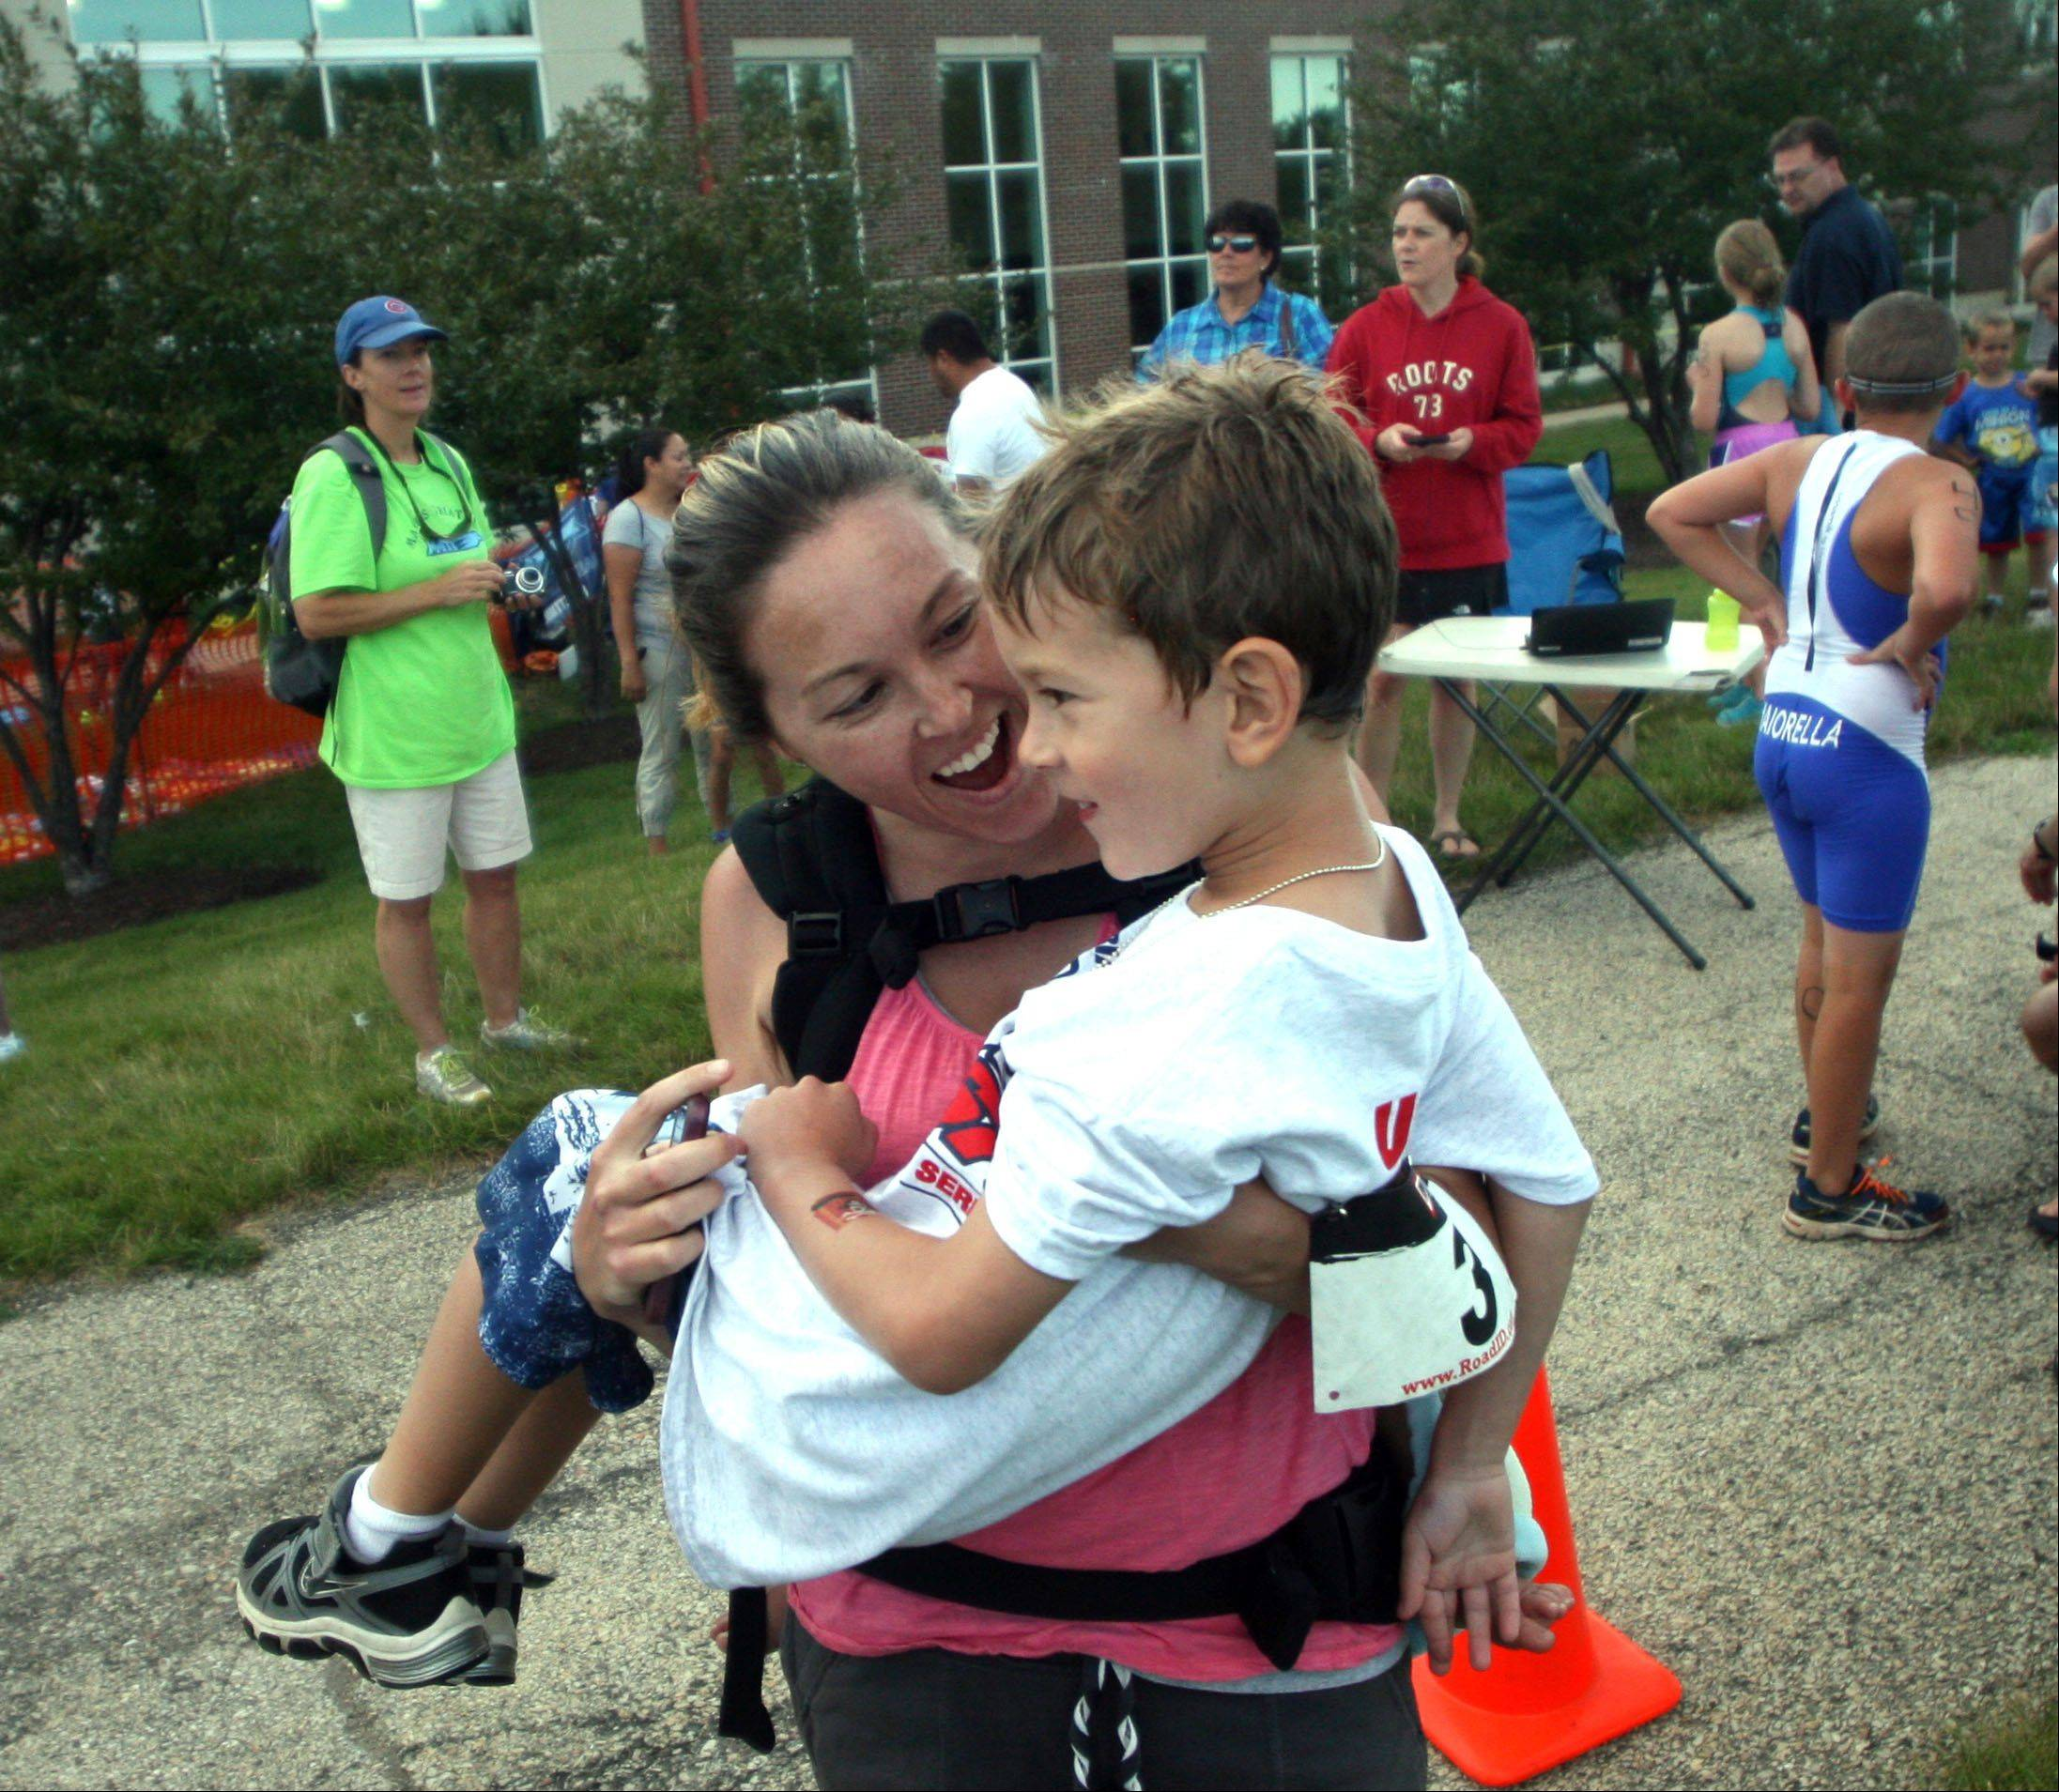 Contrell Muscari of St. Charles scoops up her son Dominic, 6, as she offers encouragement after he completed a 100-yard swim followed by a 1-km run in the Juniors event as part of the MMTT Splash and Dash race at Cadence Fitness and Health Center in Geneva Wednesday night.